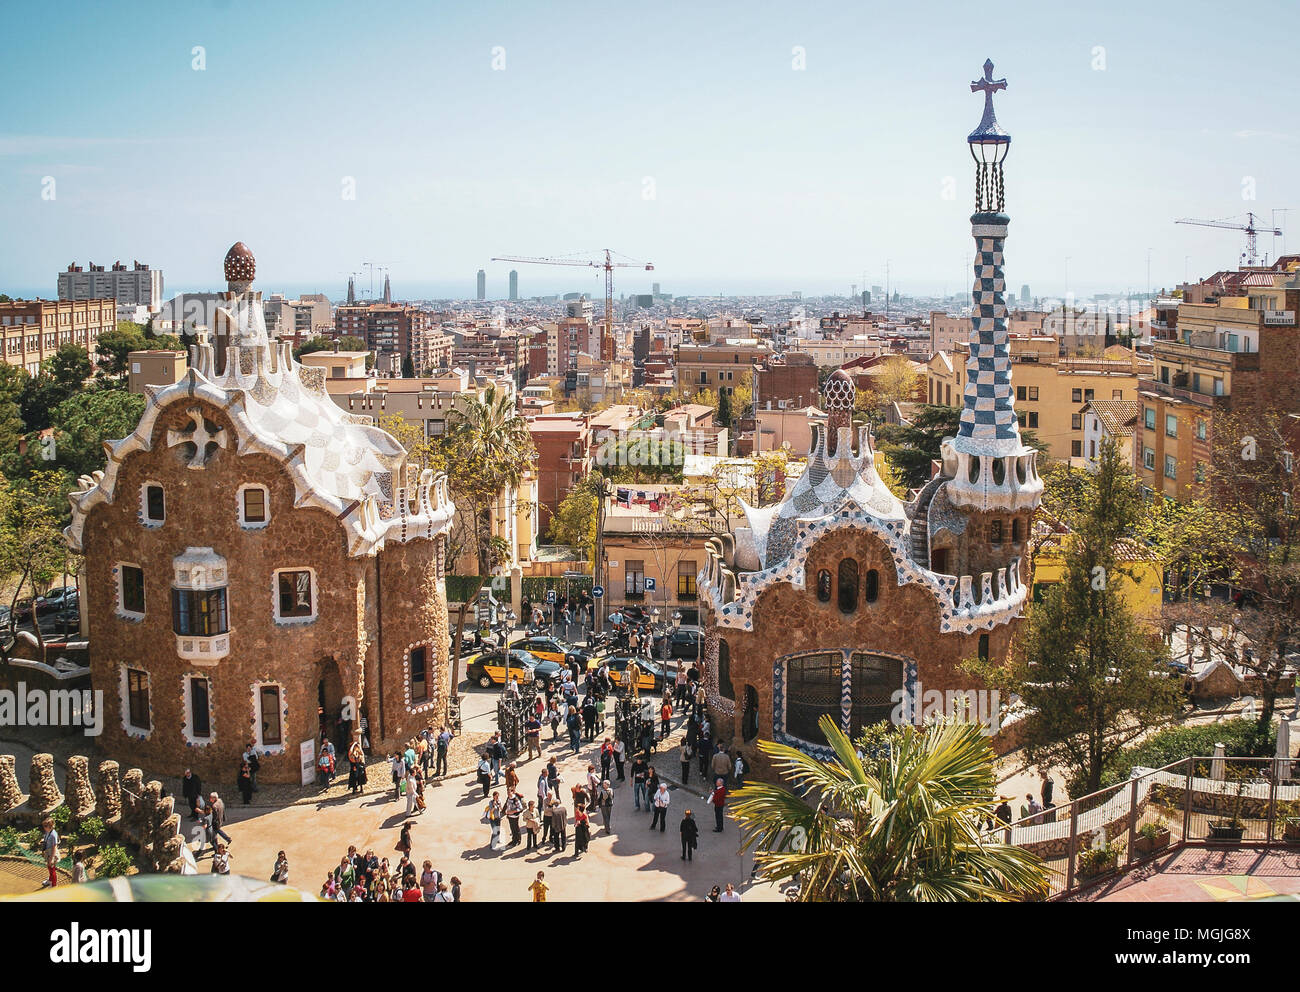 Fantasy houses by Gaudi at the entrance to Parc Guell. Barcelona, Spain. Visitors from all over the world. Urban Barcelona in the distance. - Stock Image